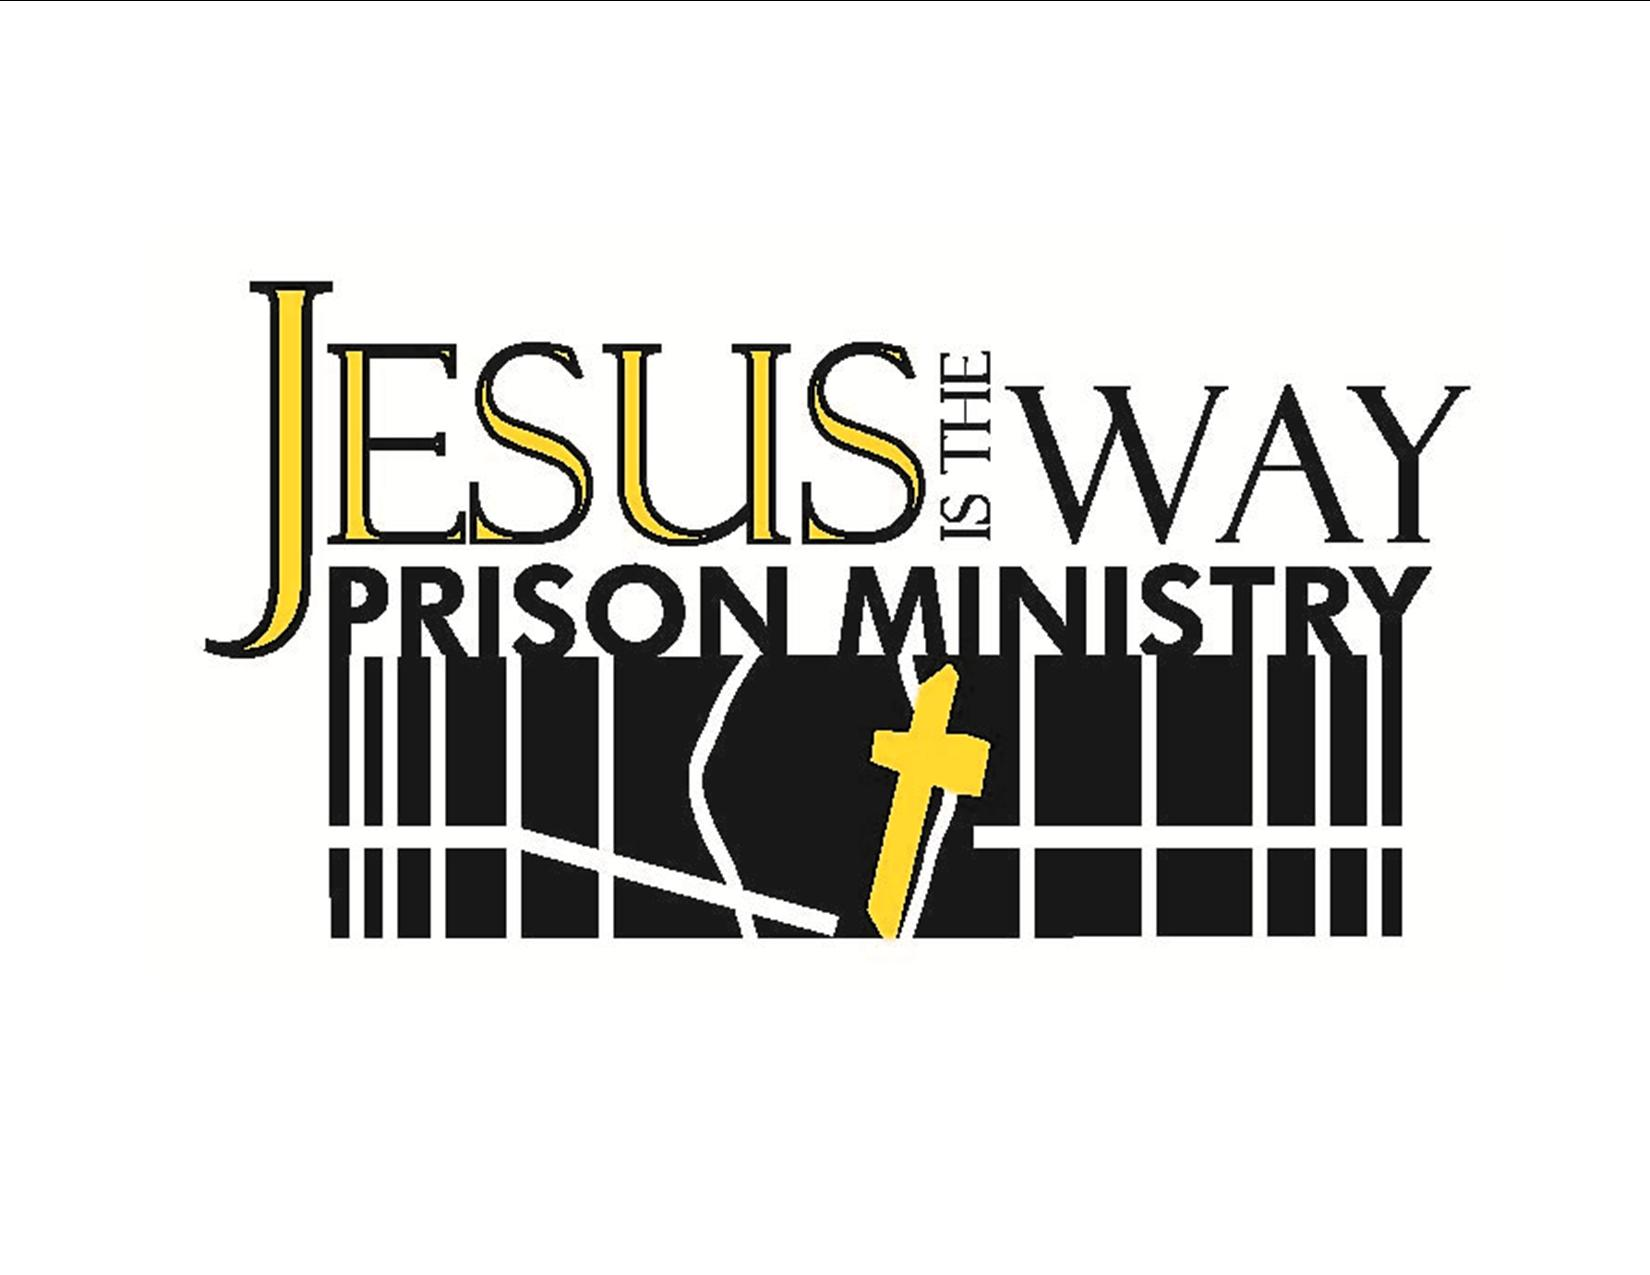 Jesus Is The Way Prison Ministry